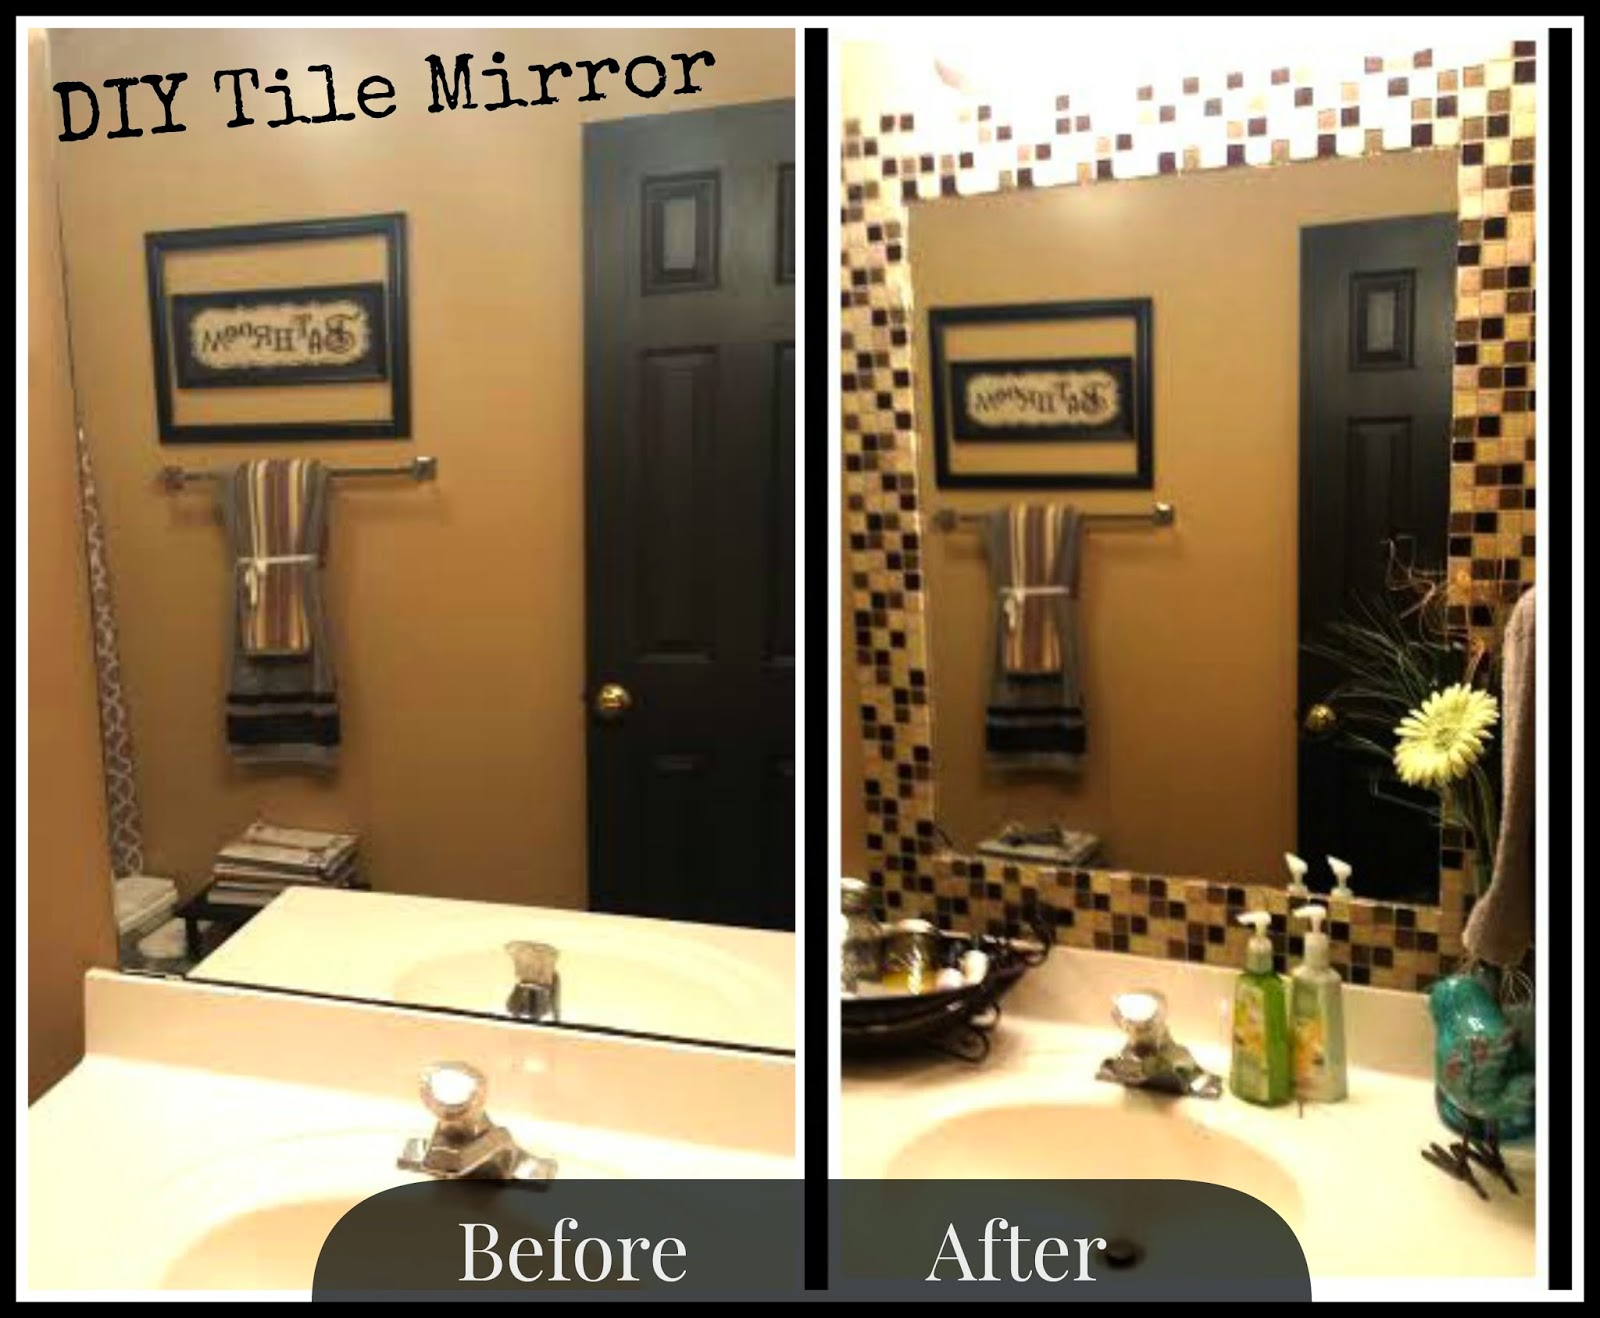 Tonya Locklear Diy Tile Mirror